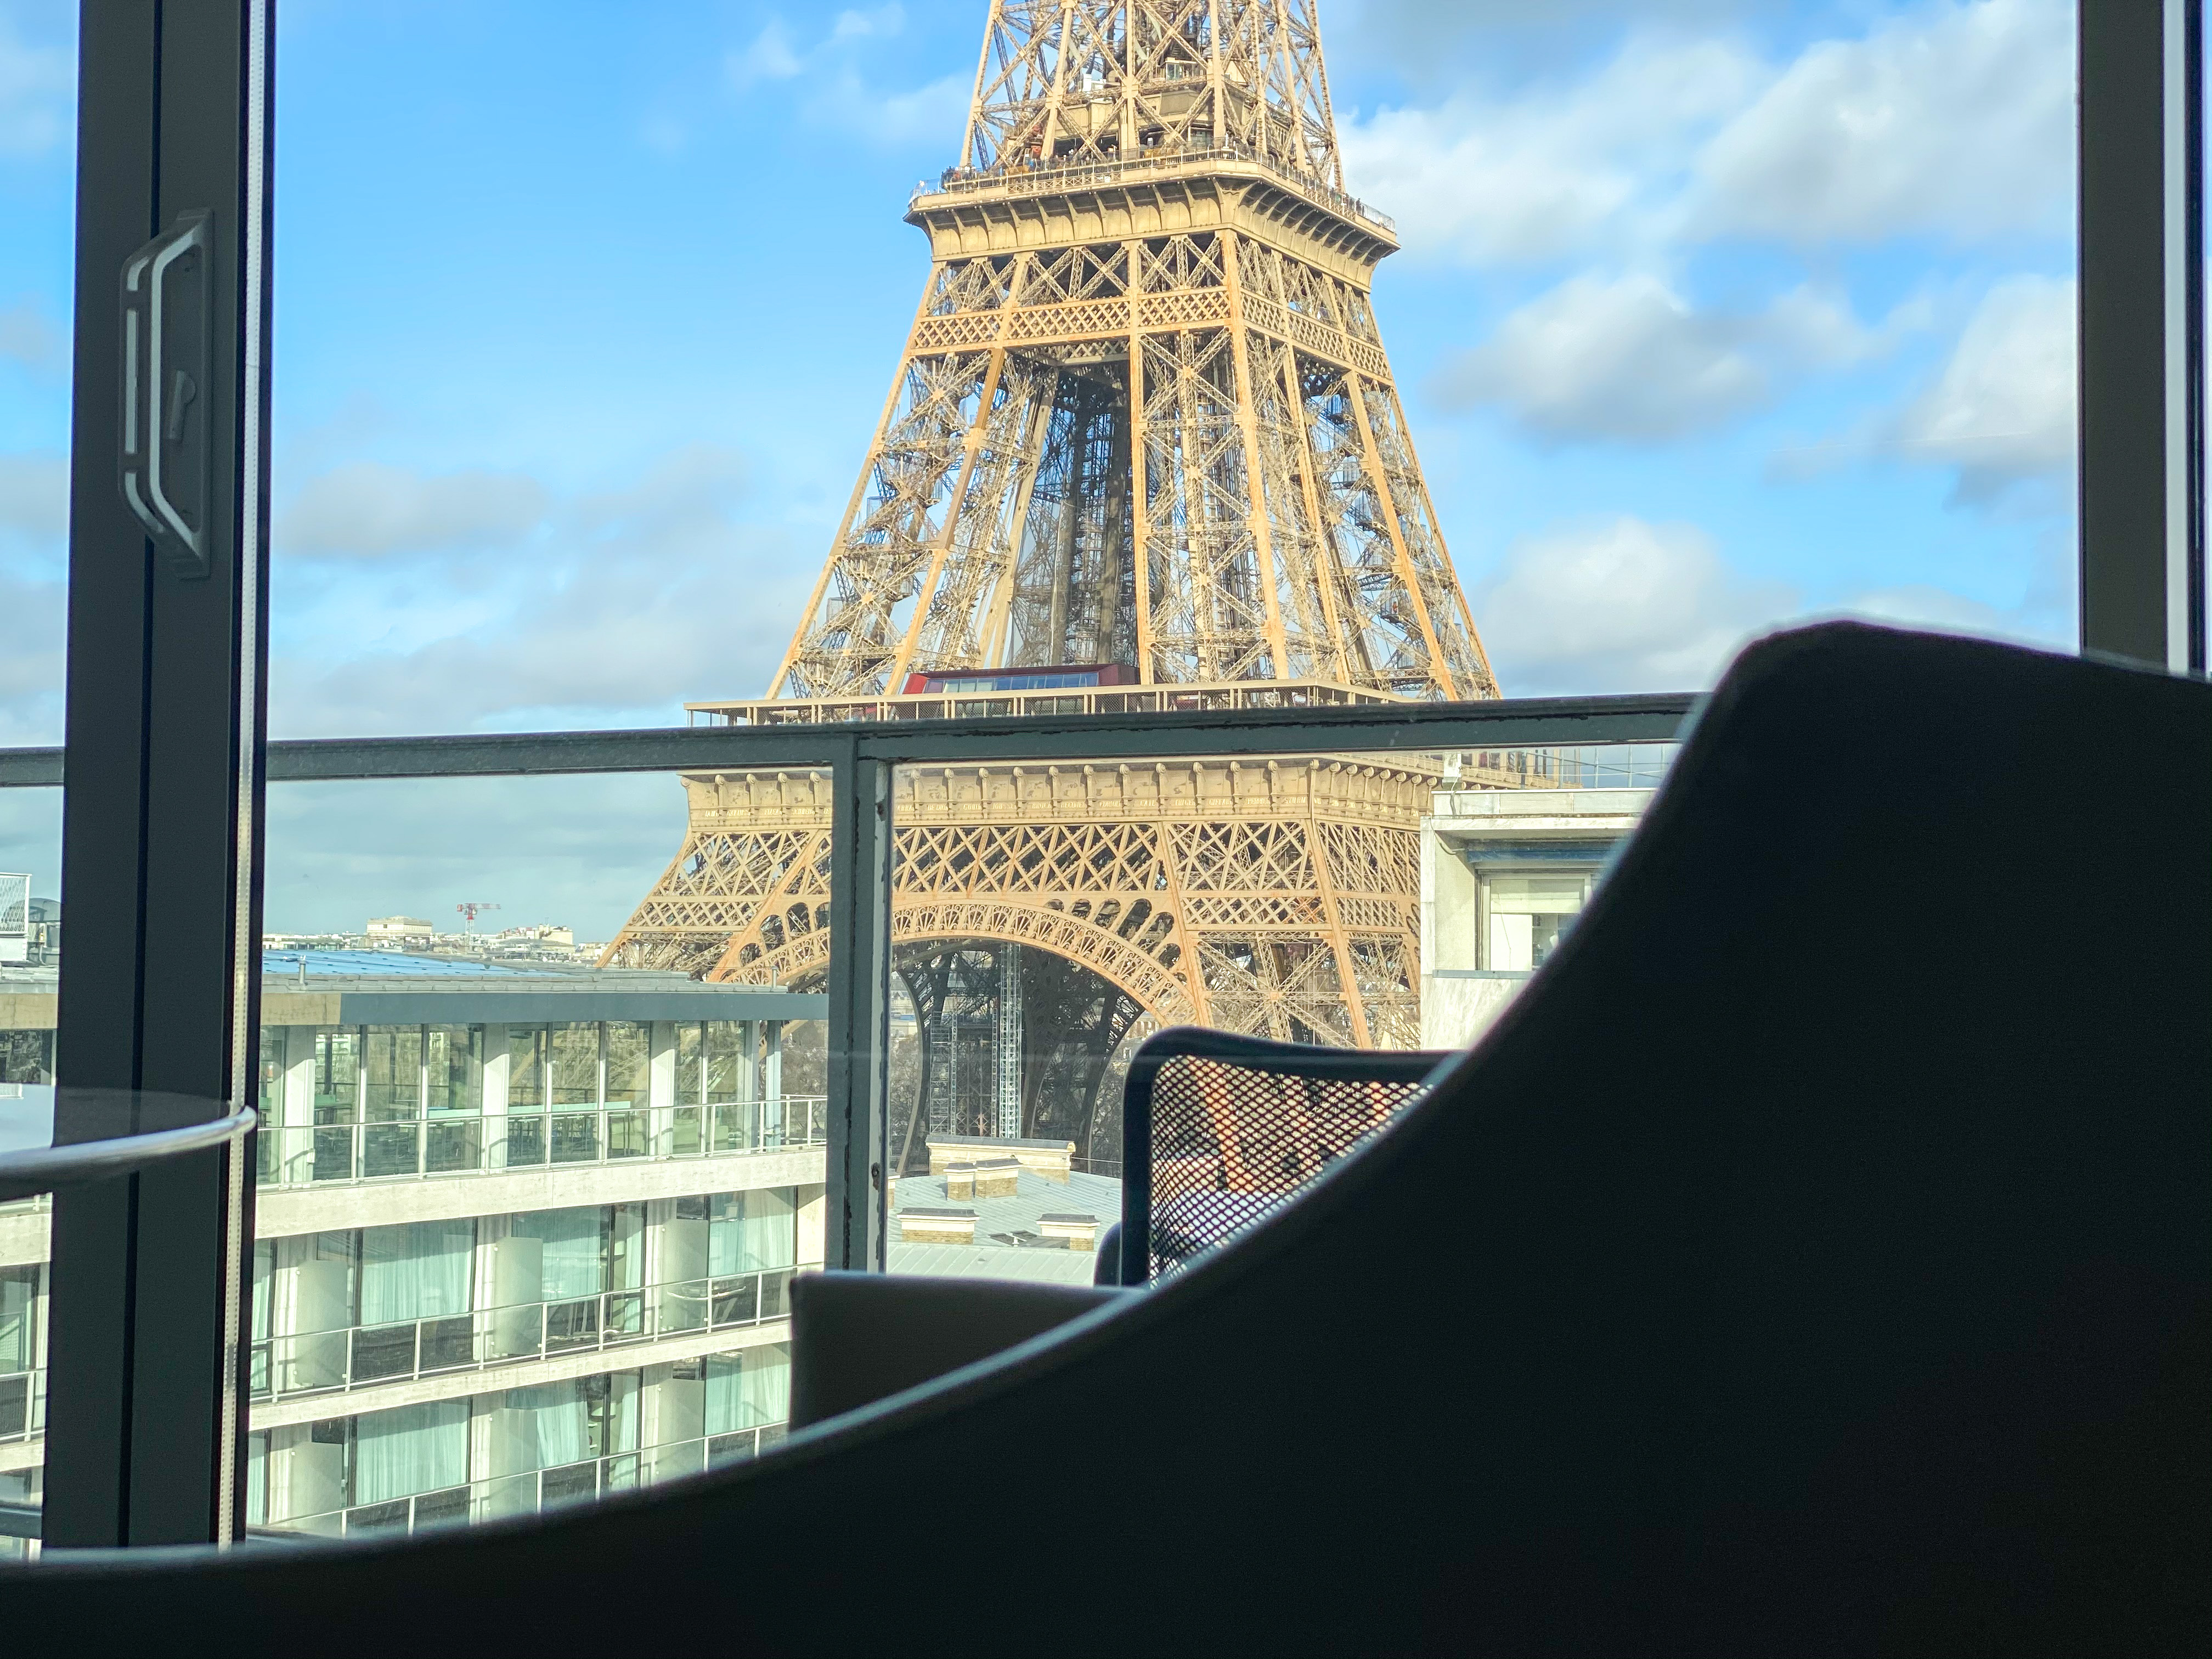 Best Room View Eiffel Tower